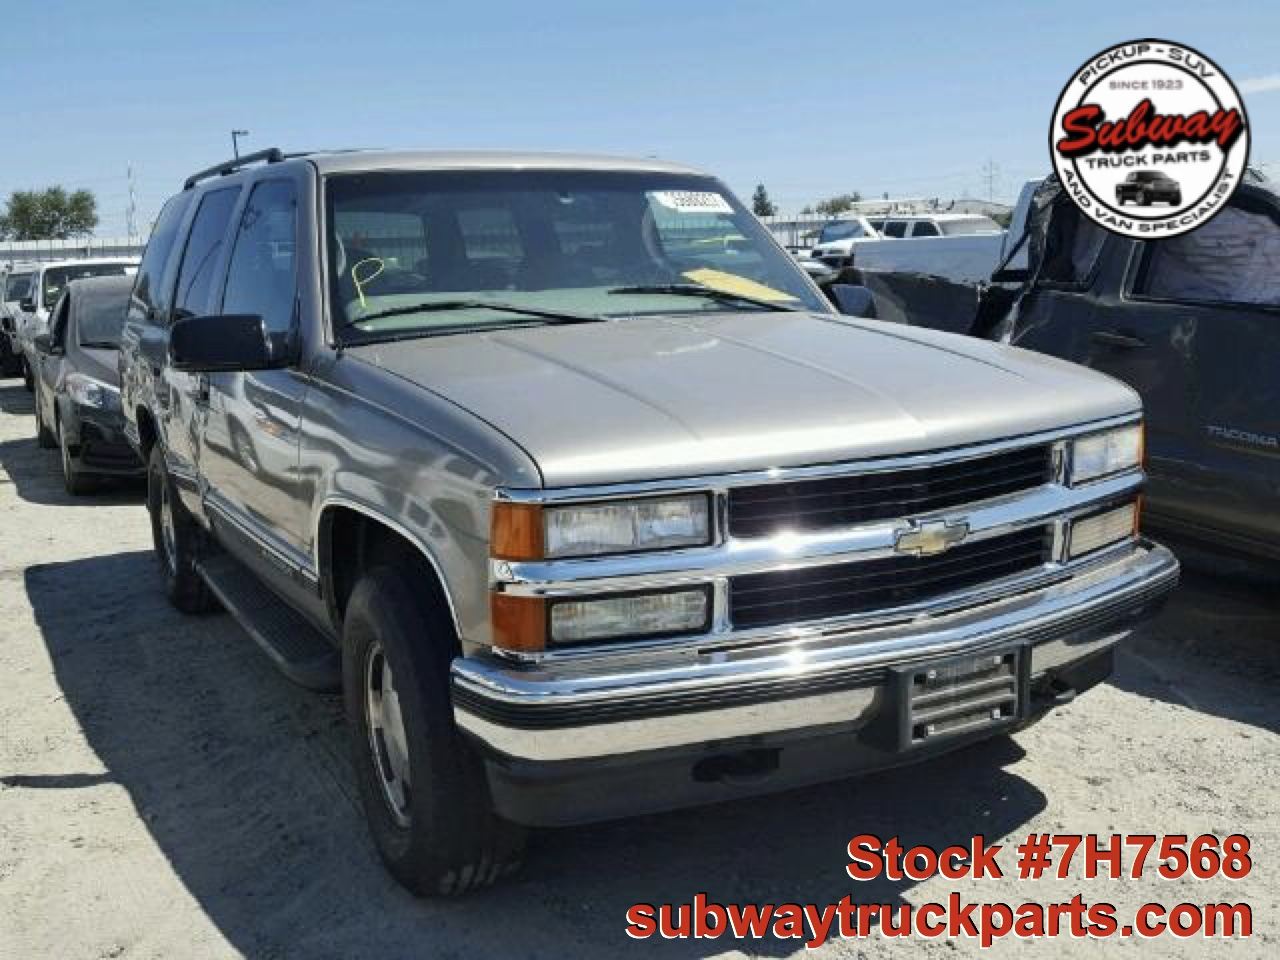 Used Parts 1999 Chevrolet Tahoe Lt 5 7l 4x4 Subway Truck